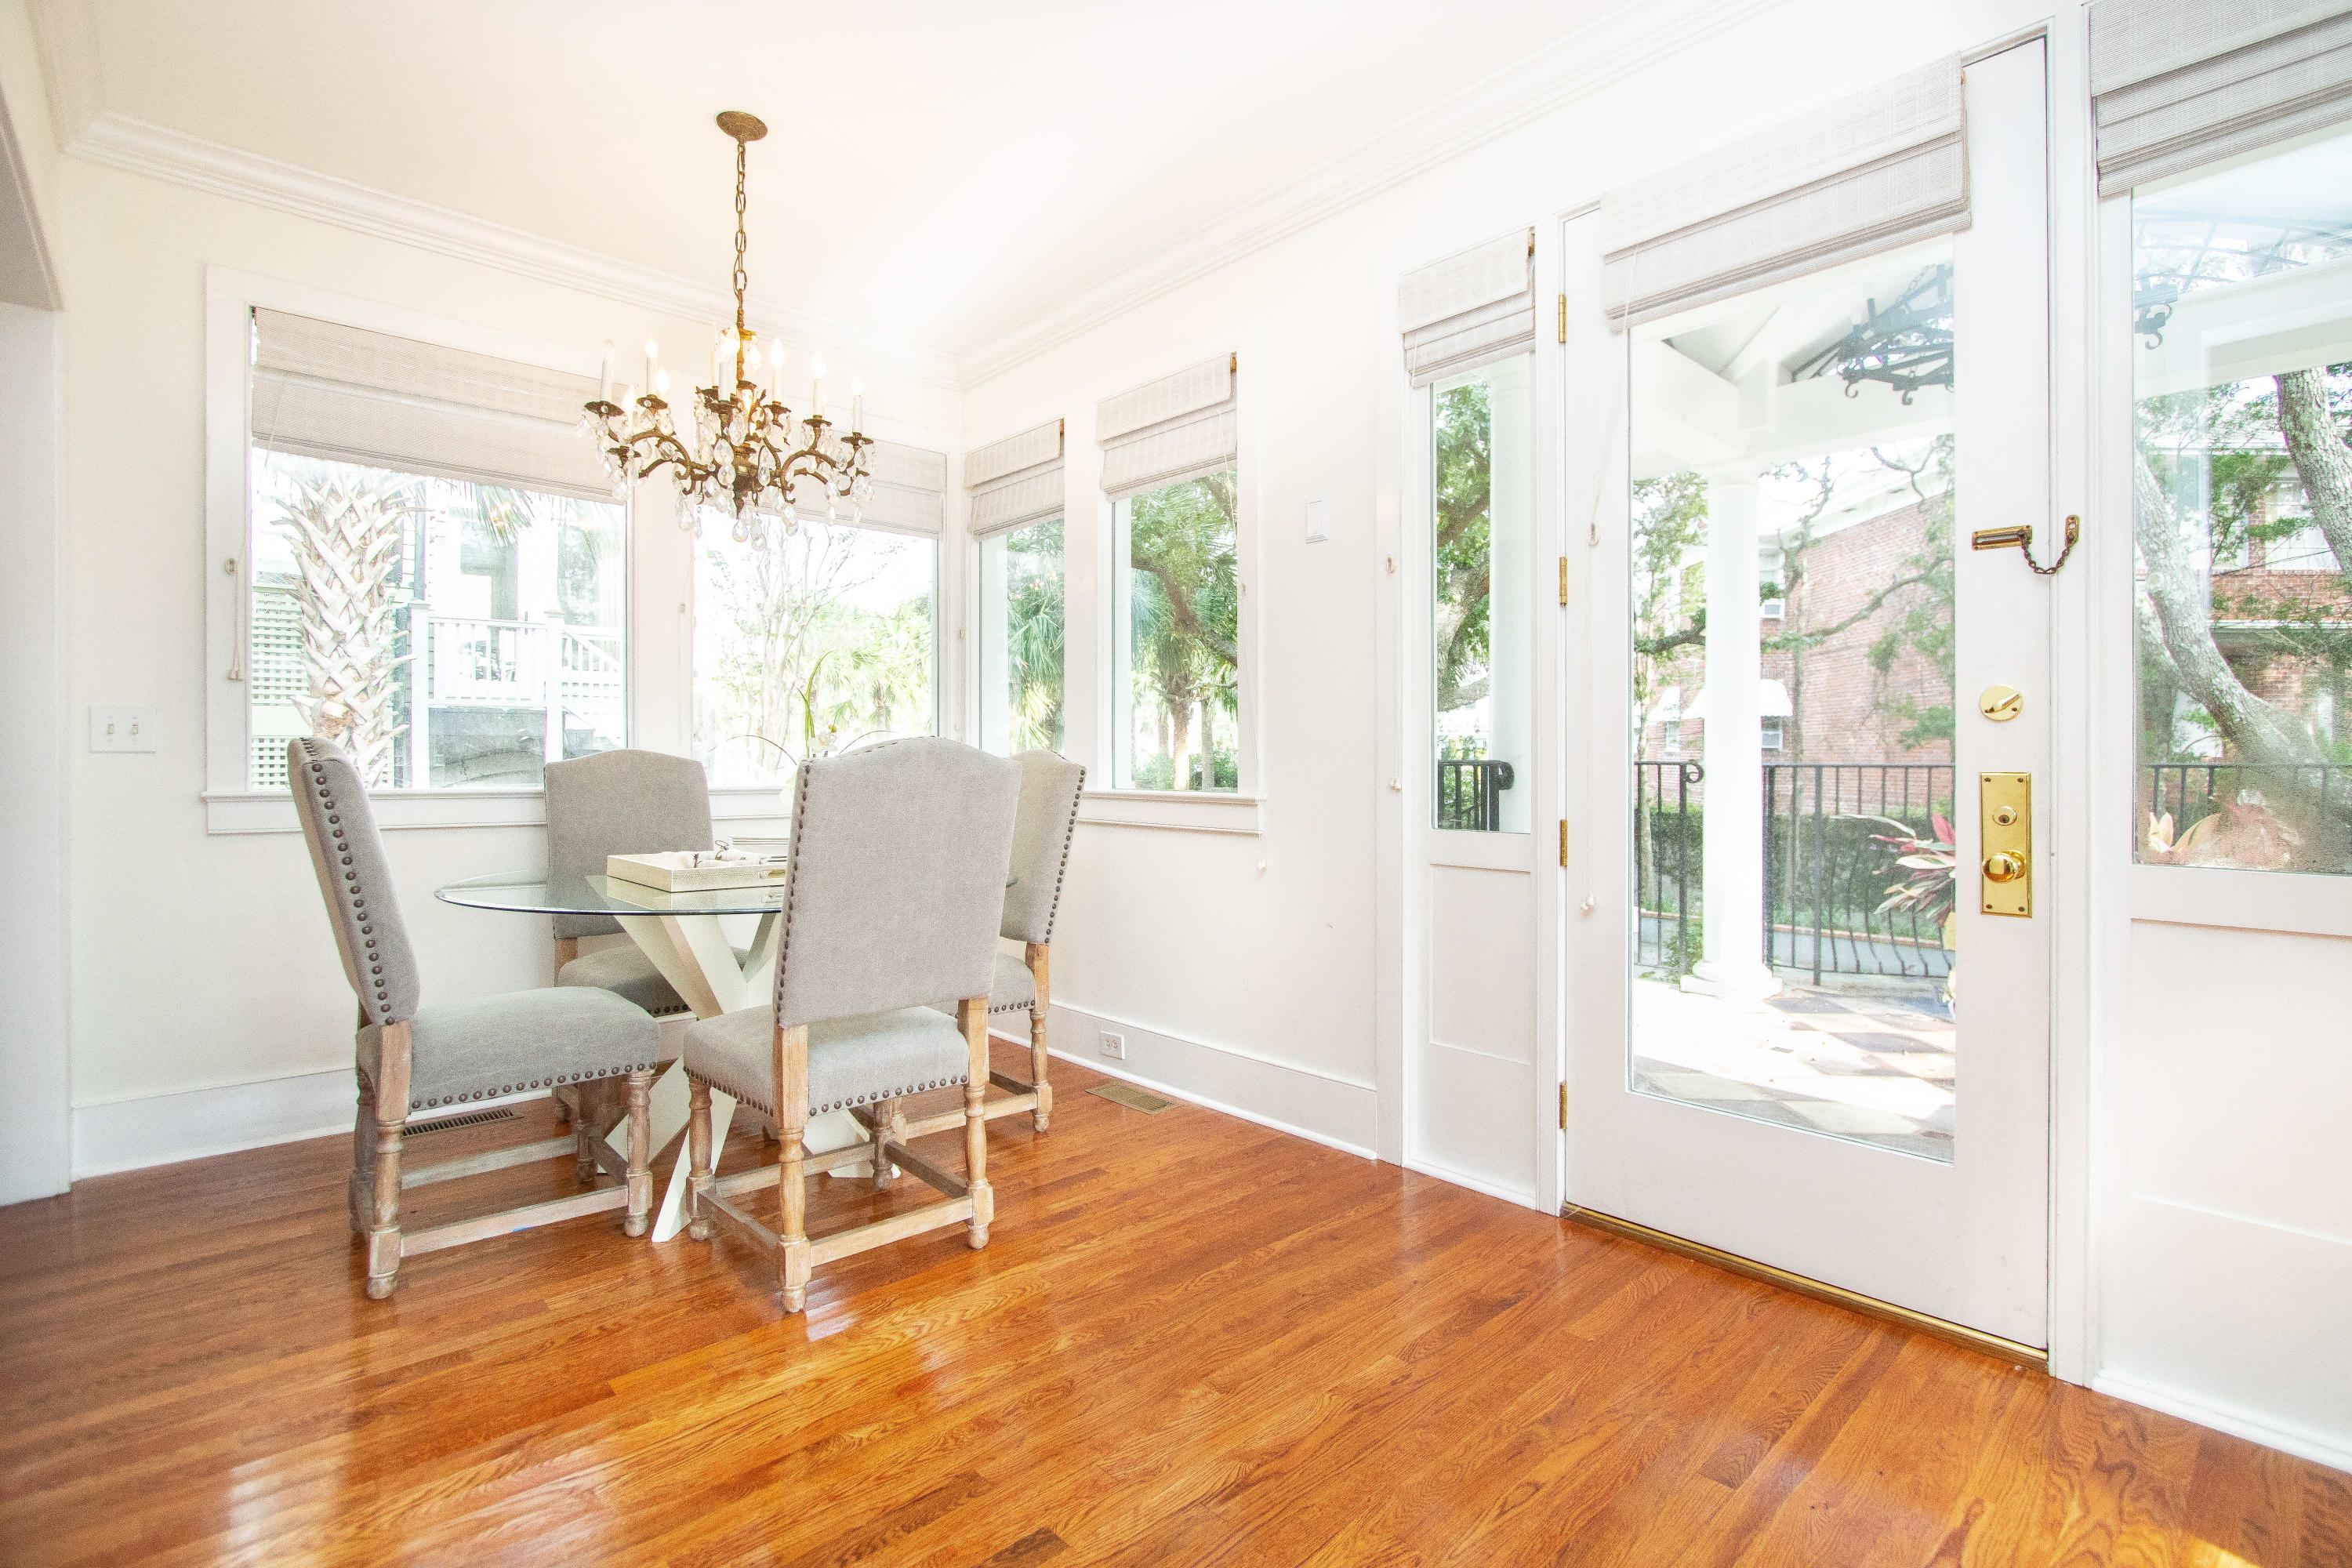 South of Broad Homes For Sale - 104 Murray, Charleston, SC - 2